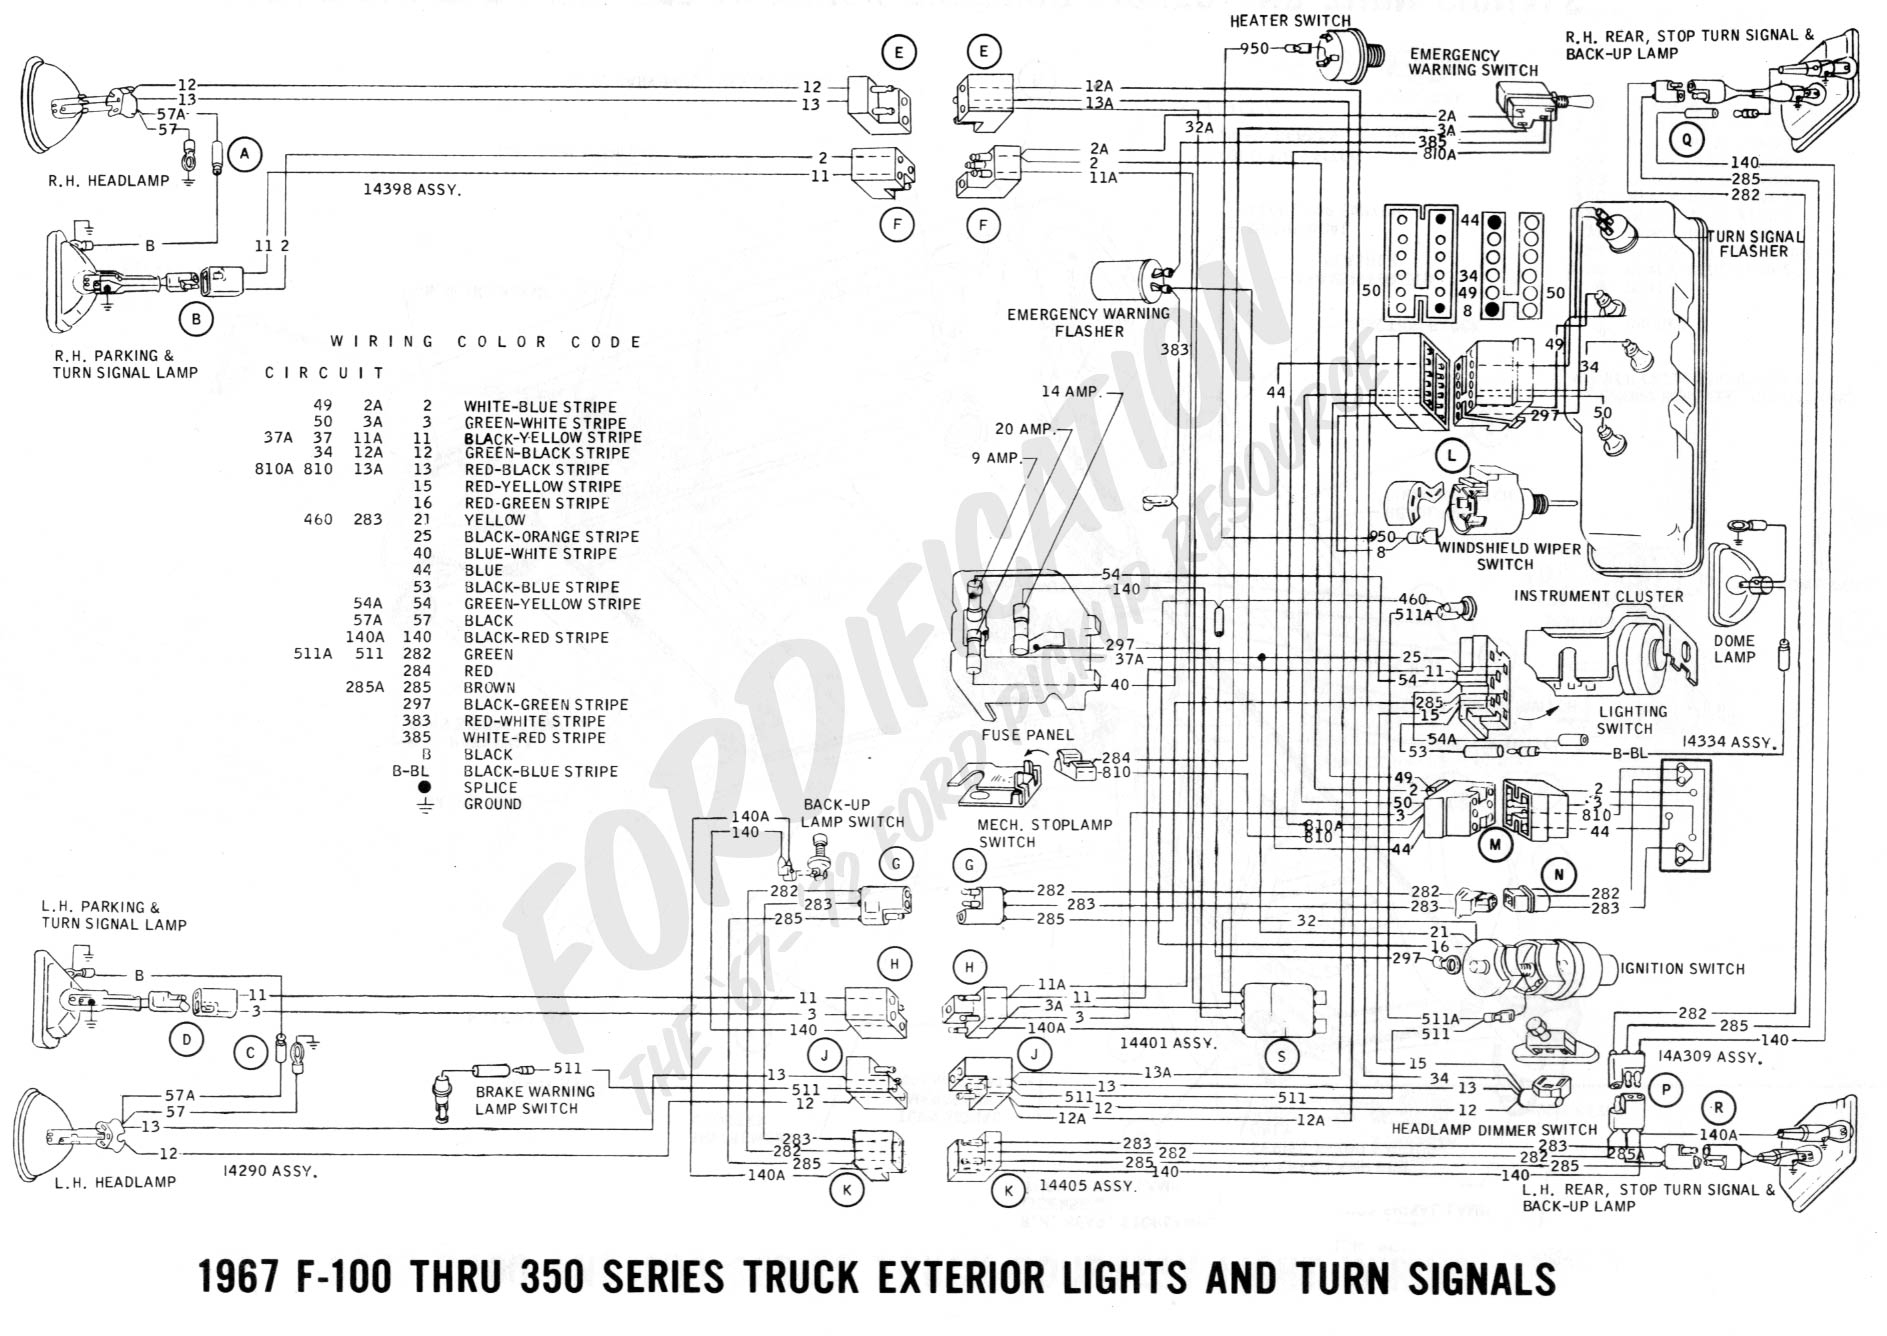 02 F350 Trailer Wiring Diagram